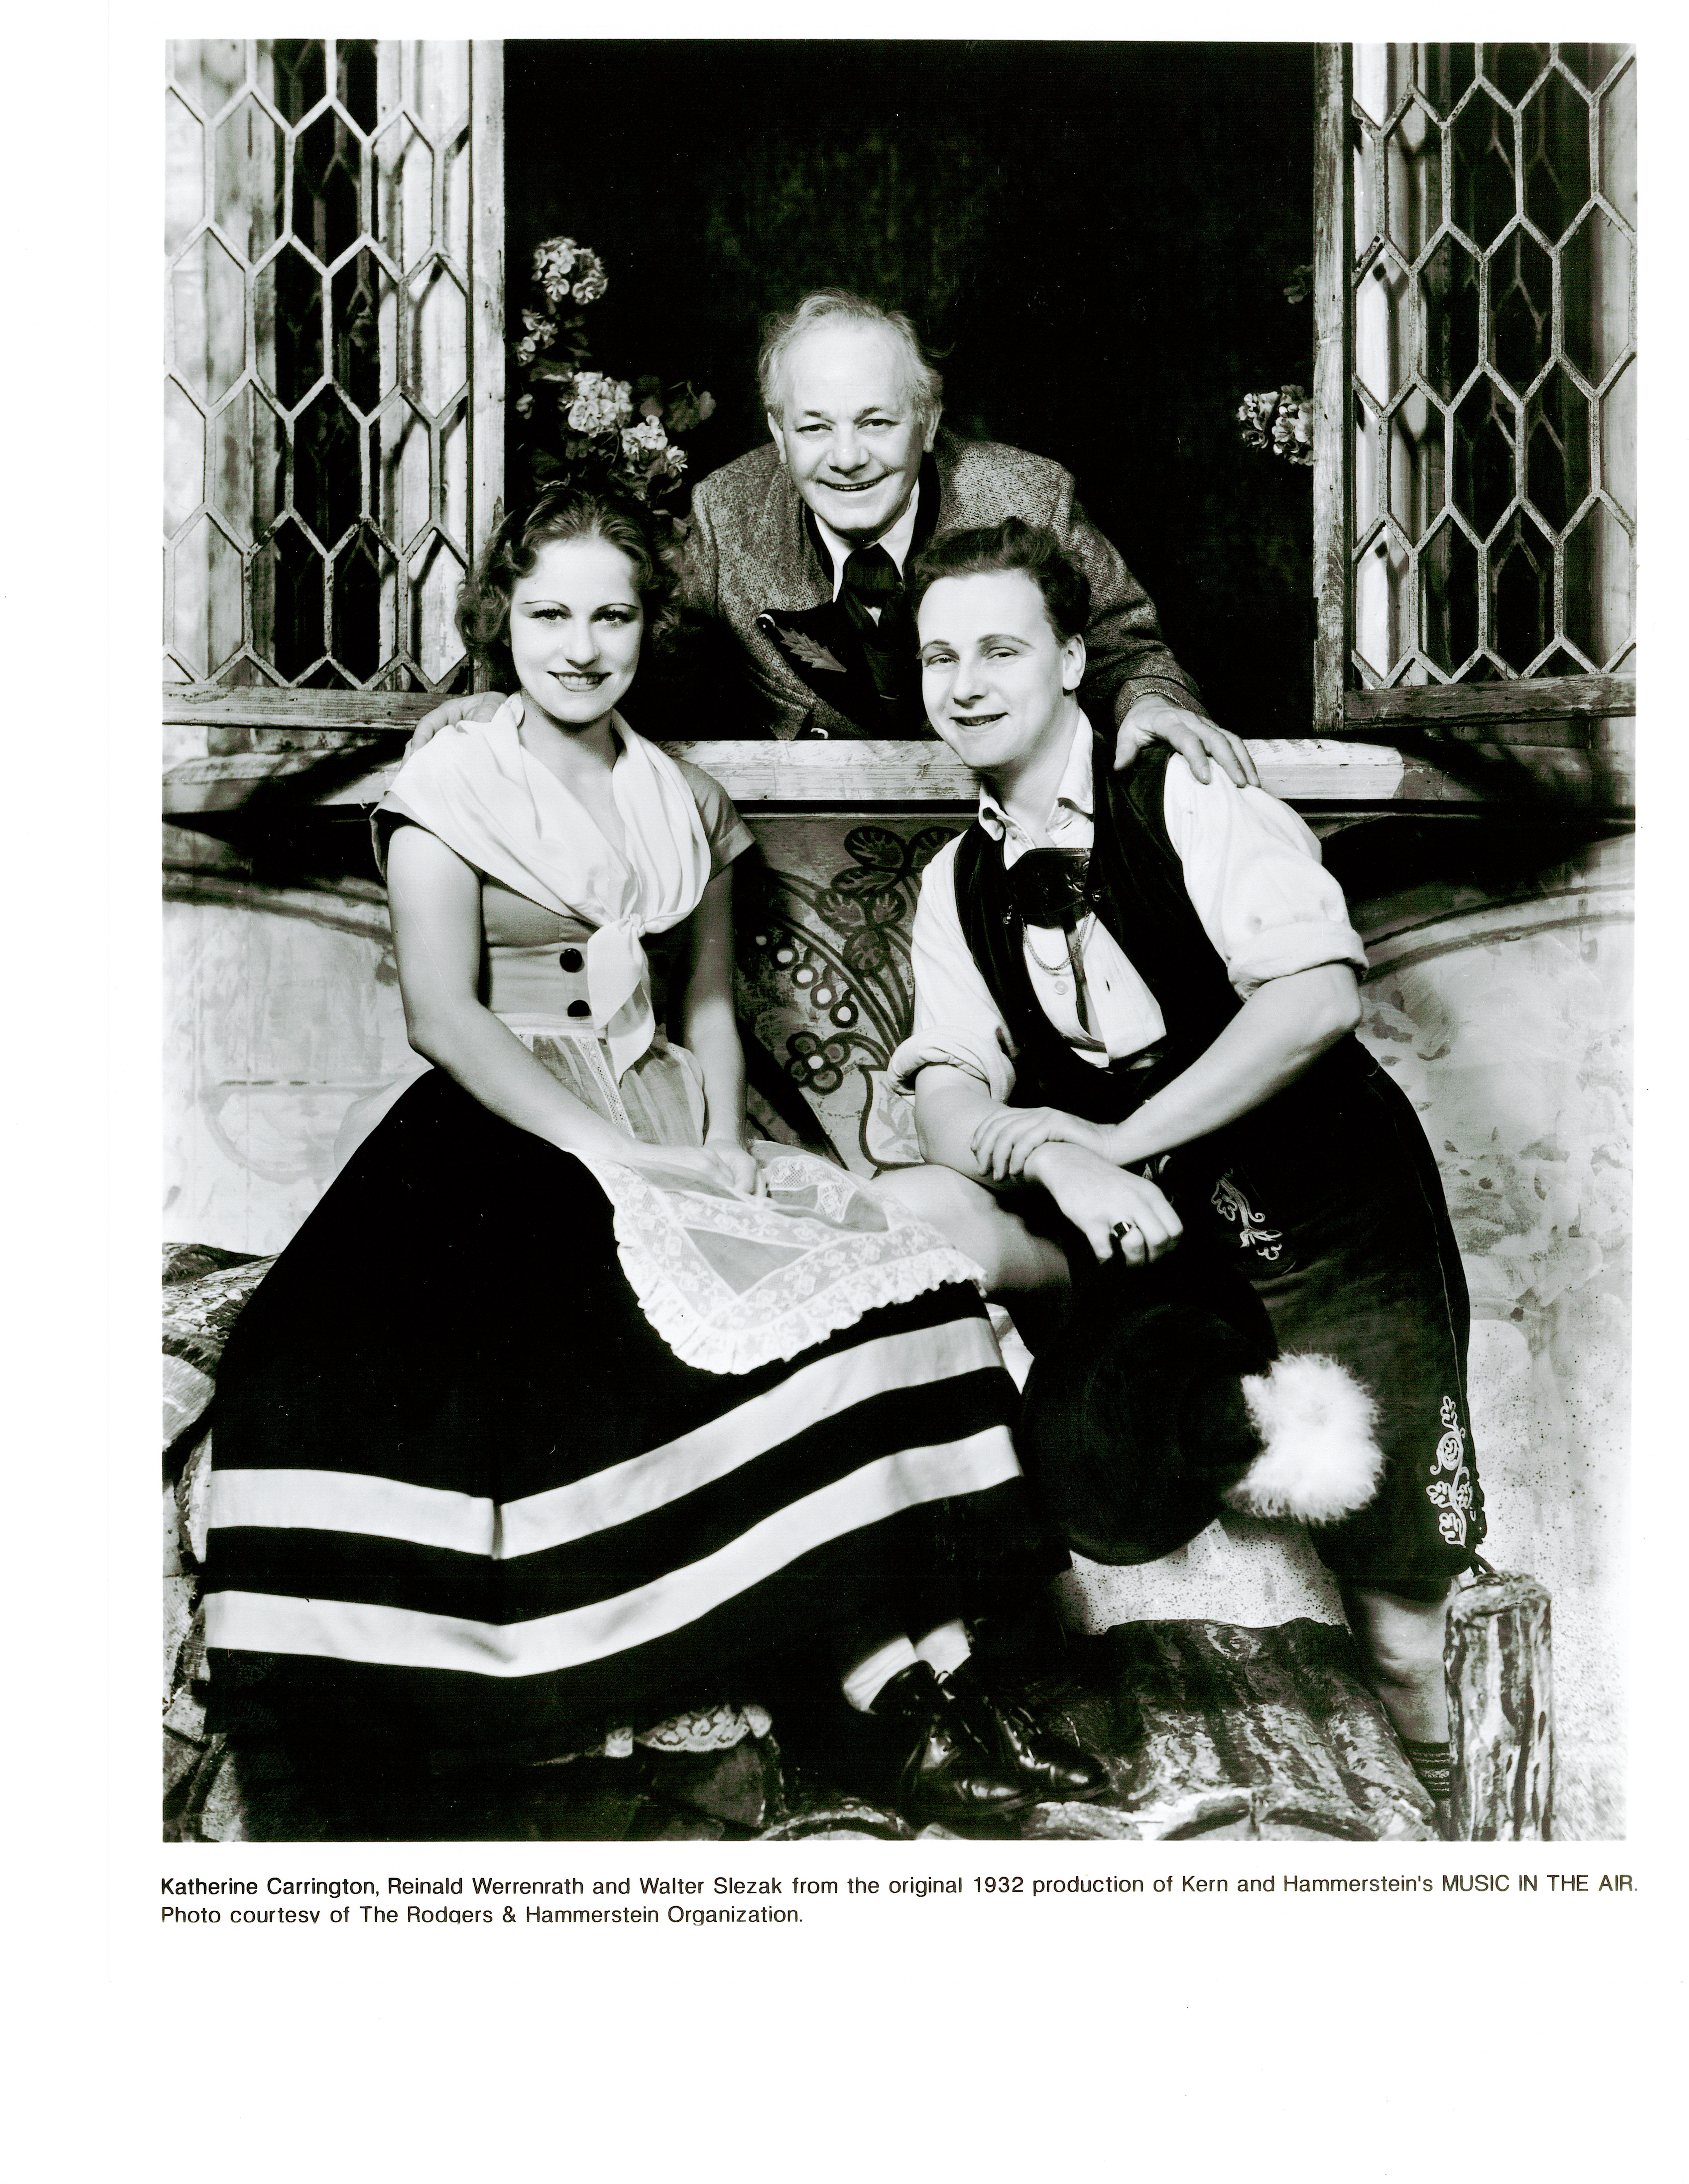 Katherine Carrington, Reinald Werrenrath, and Walter Slezak in MUSIC IN THE AIR (1932)